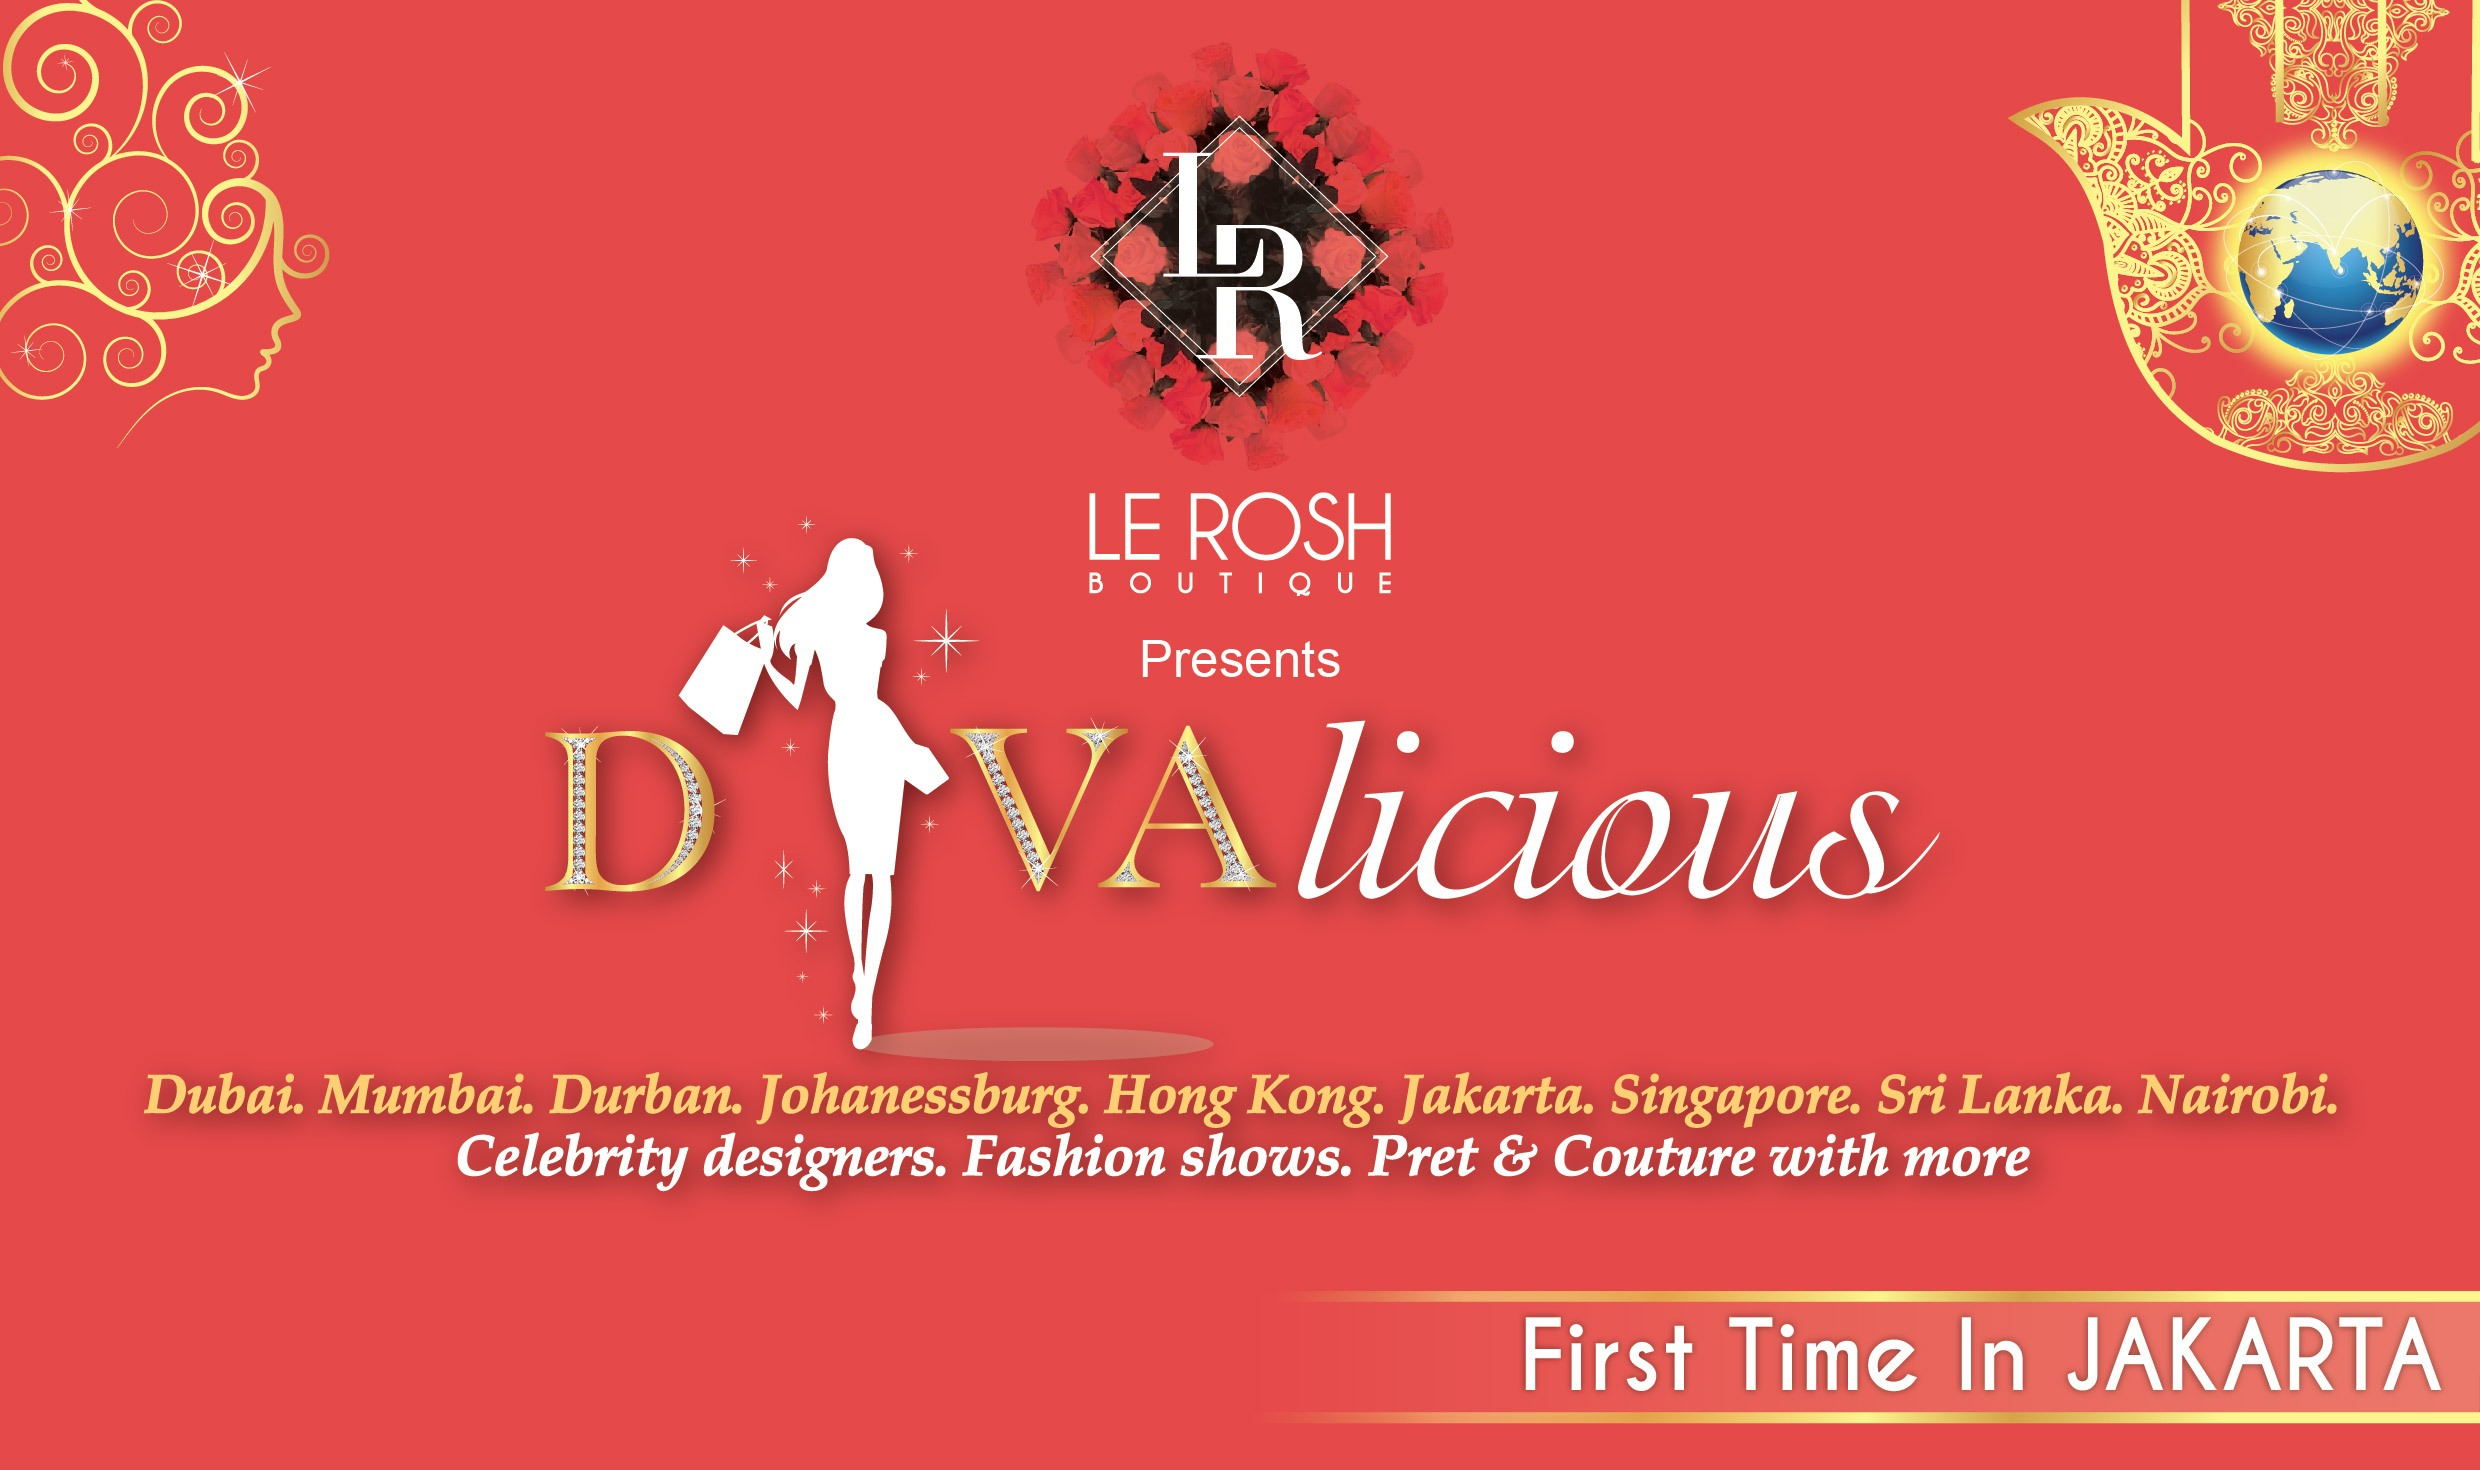 DIVAlicious Pop-Up Fashion & Lifestyle Exhibition for the very 1st time in Jakarta